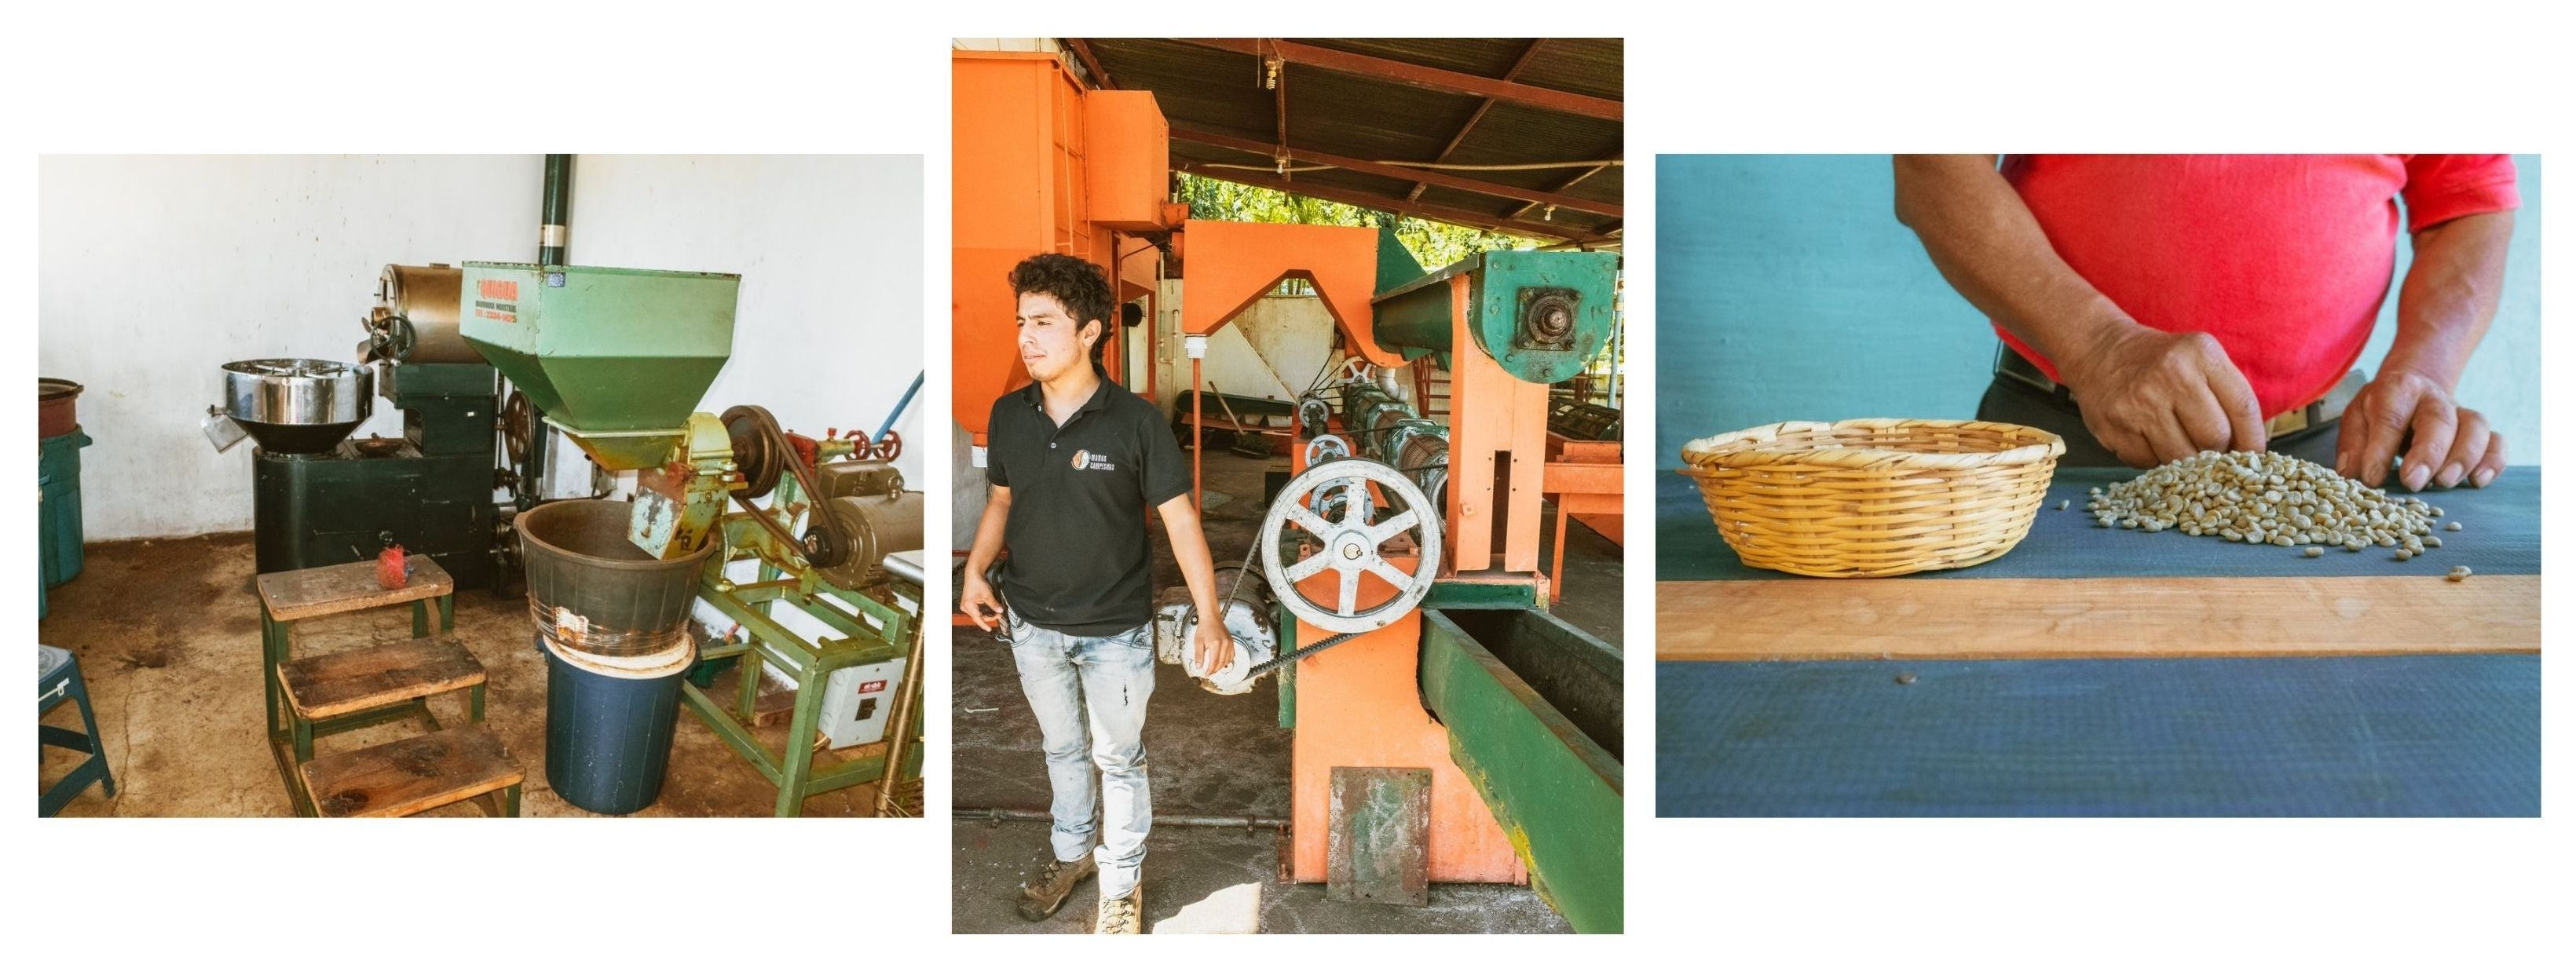 Milling and sorting raw coffee